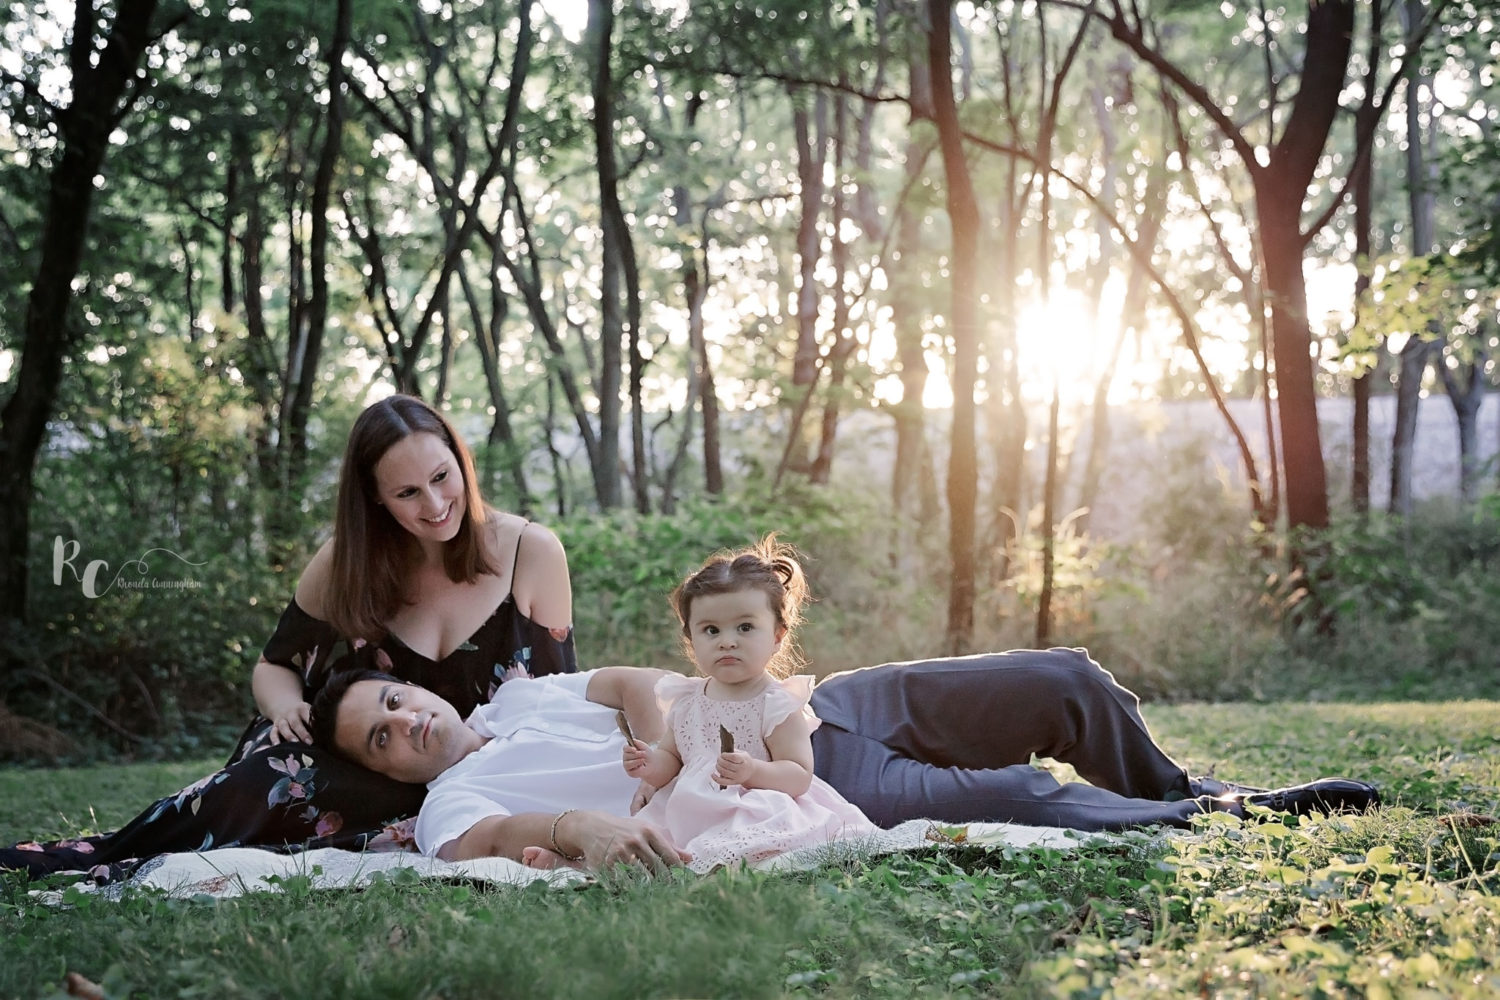 One year Portrait Session of family with sun setting in the background captured by Rhonda Cunningham Photography, a Lexington, Ky Photographer.